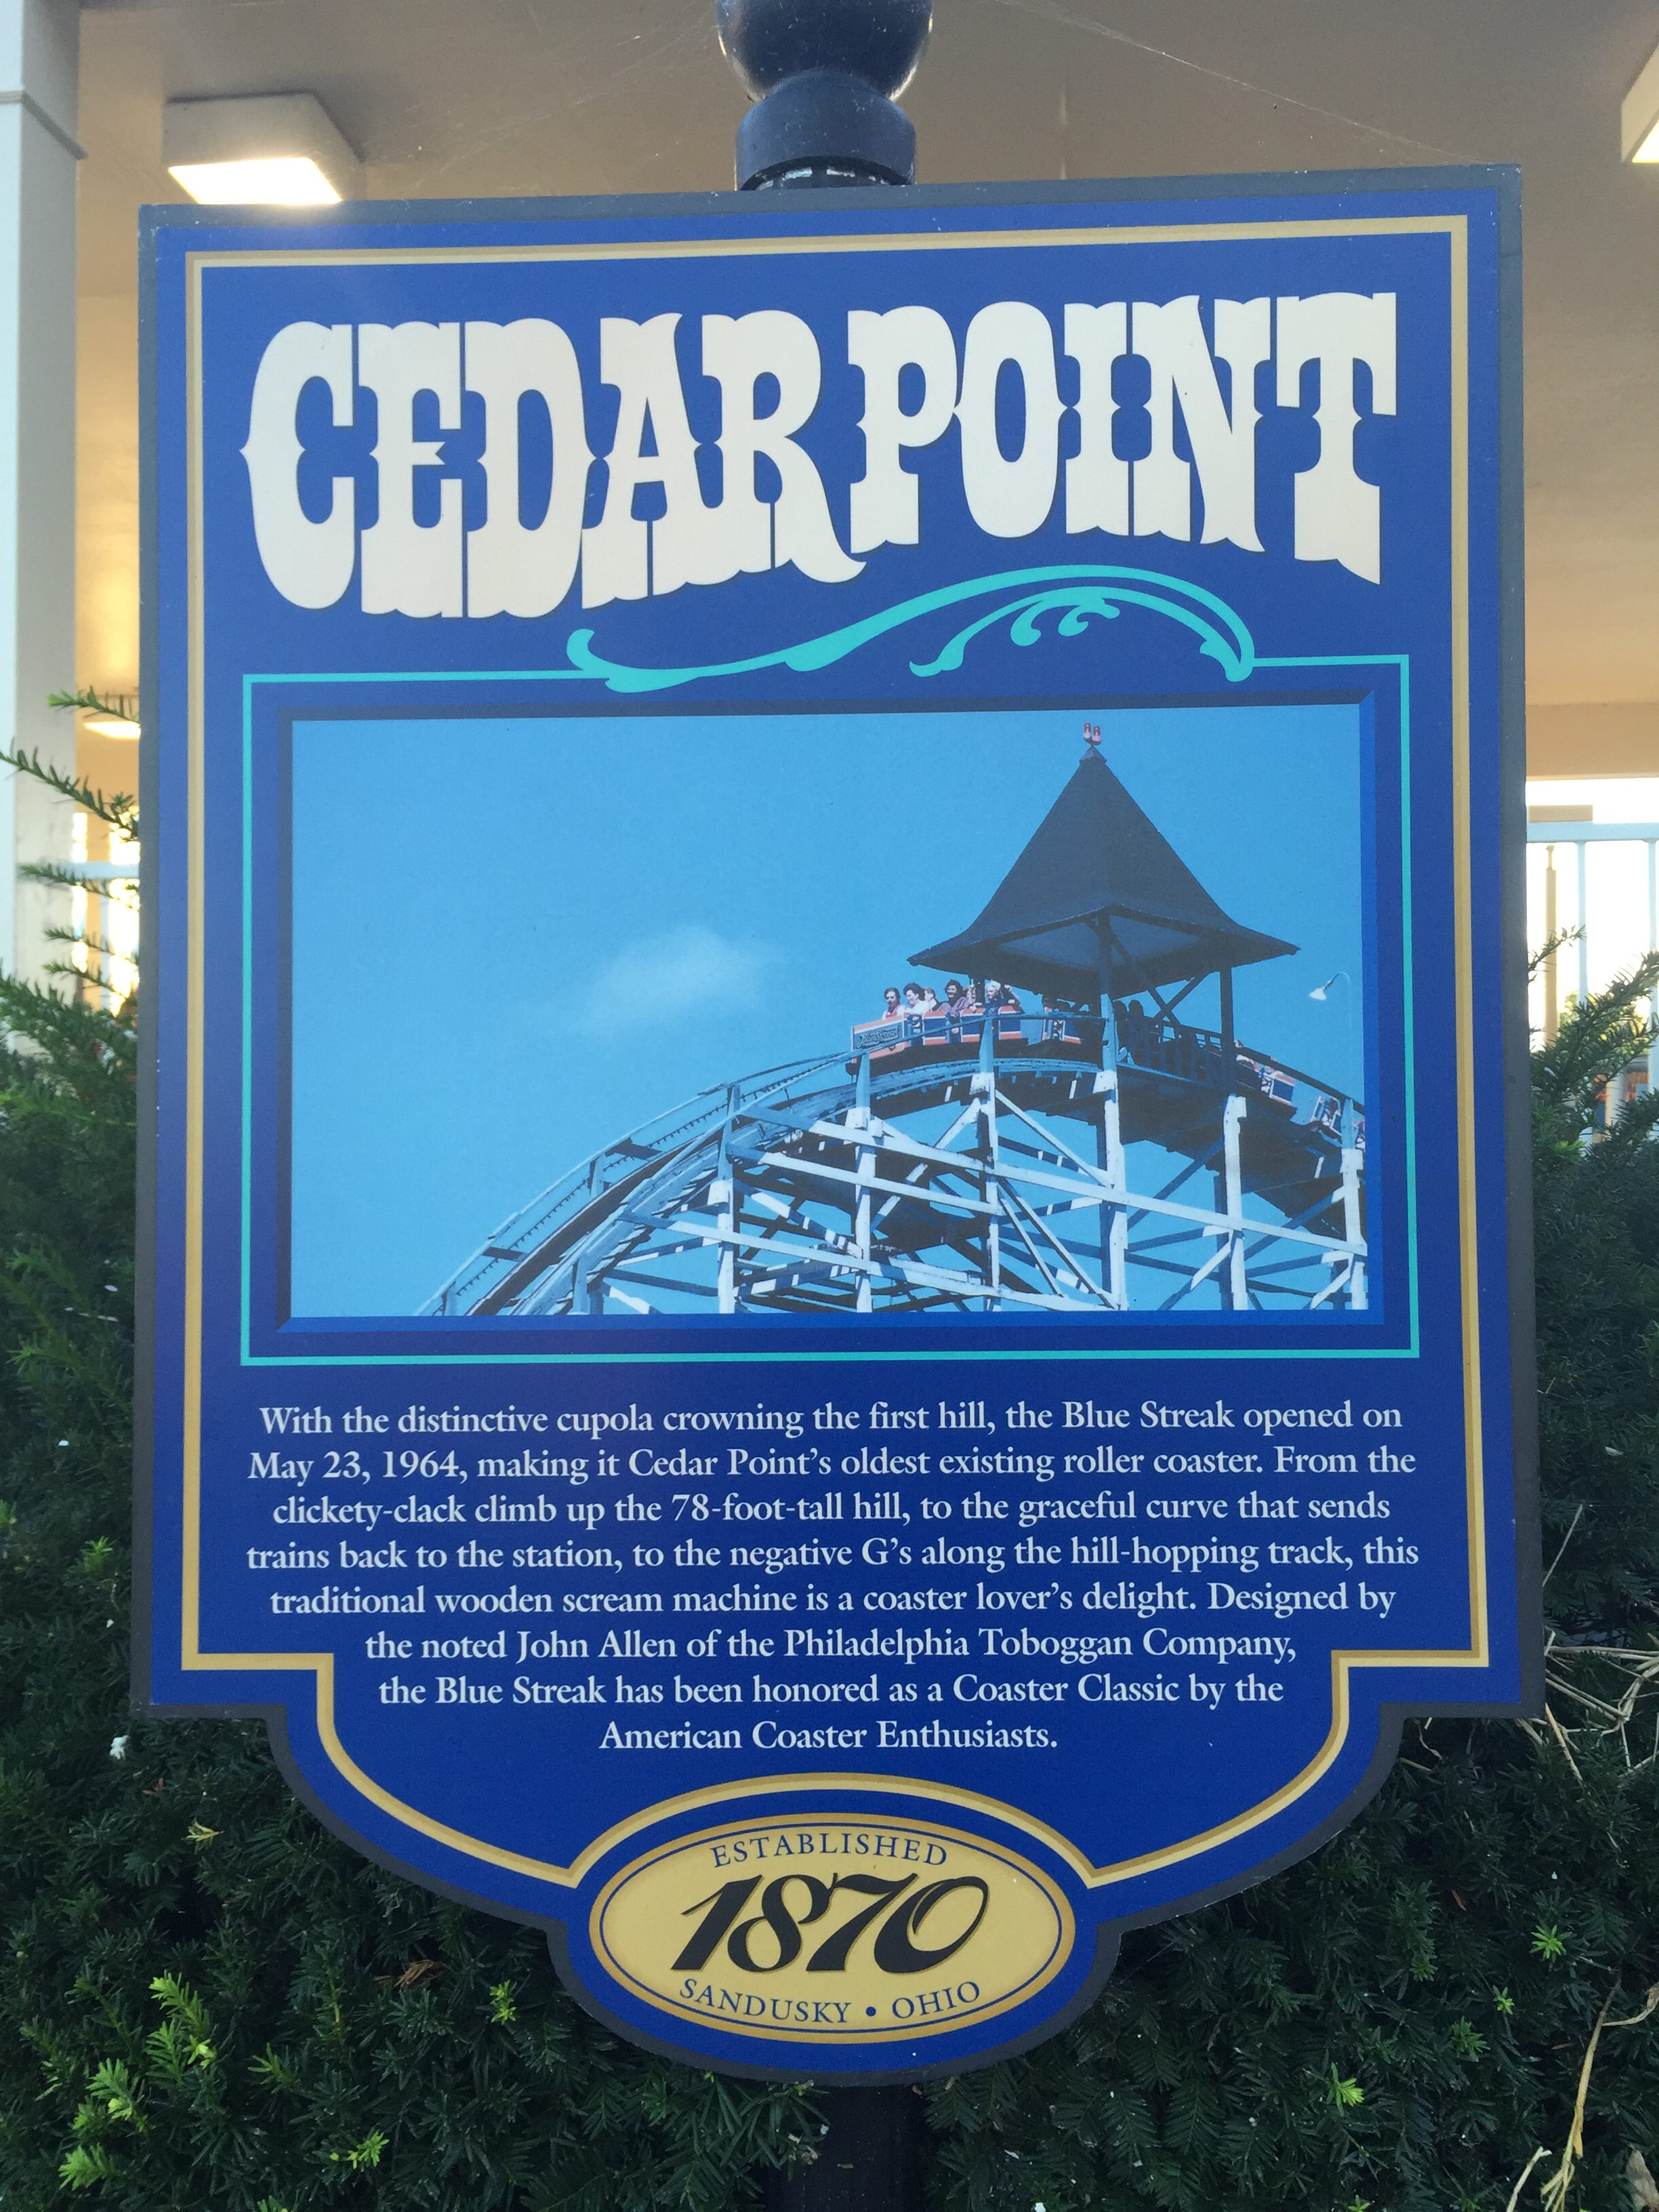 Cedar Point - Roller Coaster Capital of the World